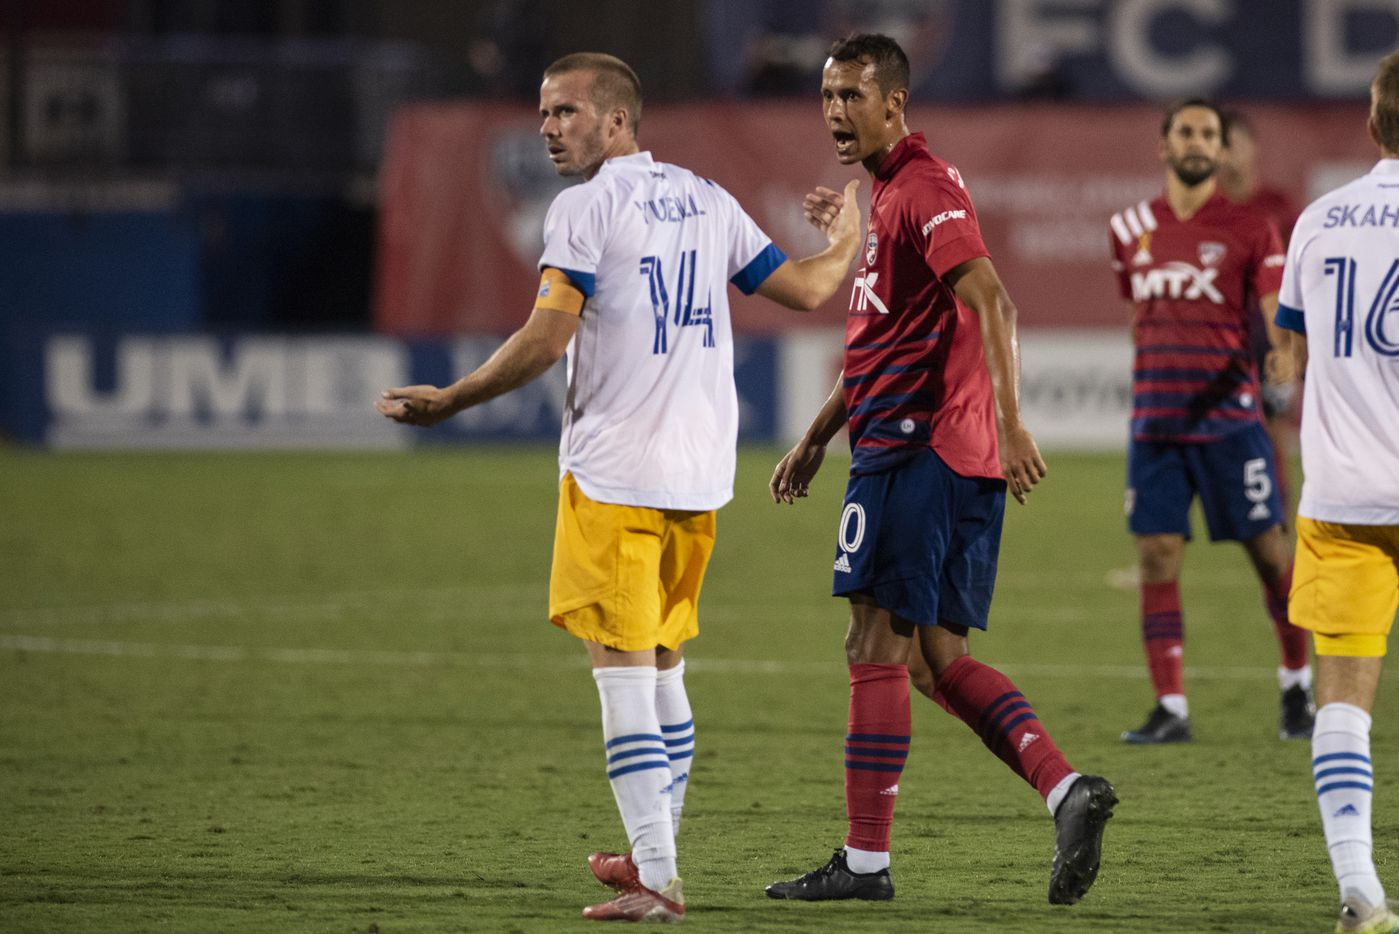 FC Dallas midfielder Andres Ricaurte (10) taunts San Jose midfielder Jackson Yueill (14) after a call is made by an official during FC DallasÕ home game against the San Jose Earthquakes at Toyota Stadium in Frisco, Texas on Saturday, September 11, 2021. (Emil Lippe/Special Contributor)